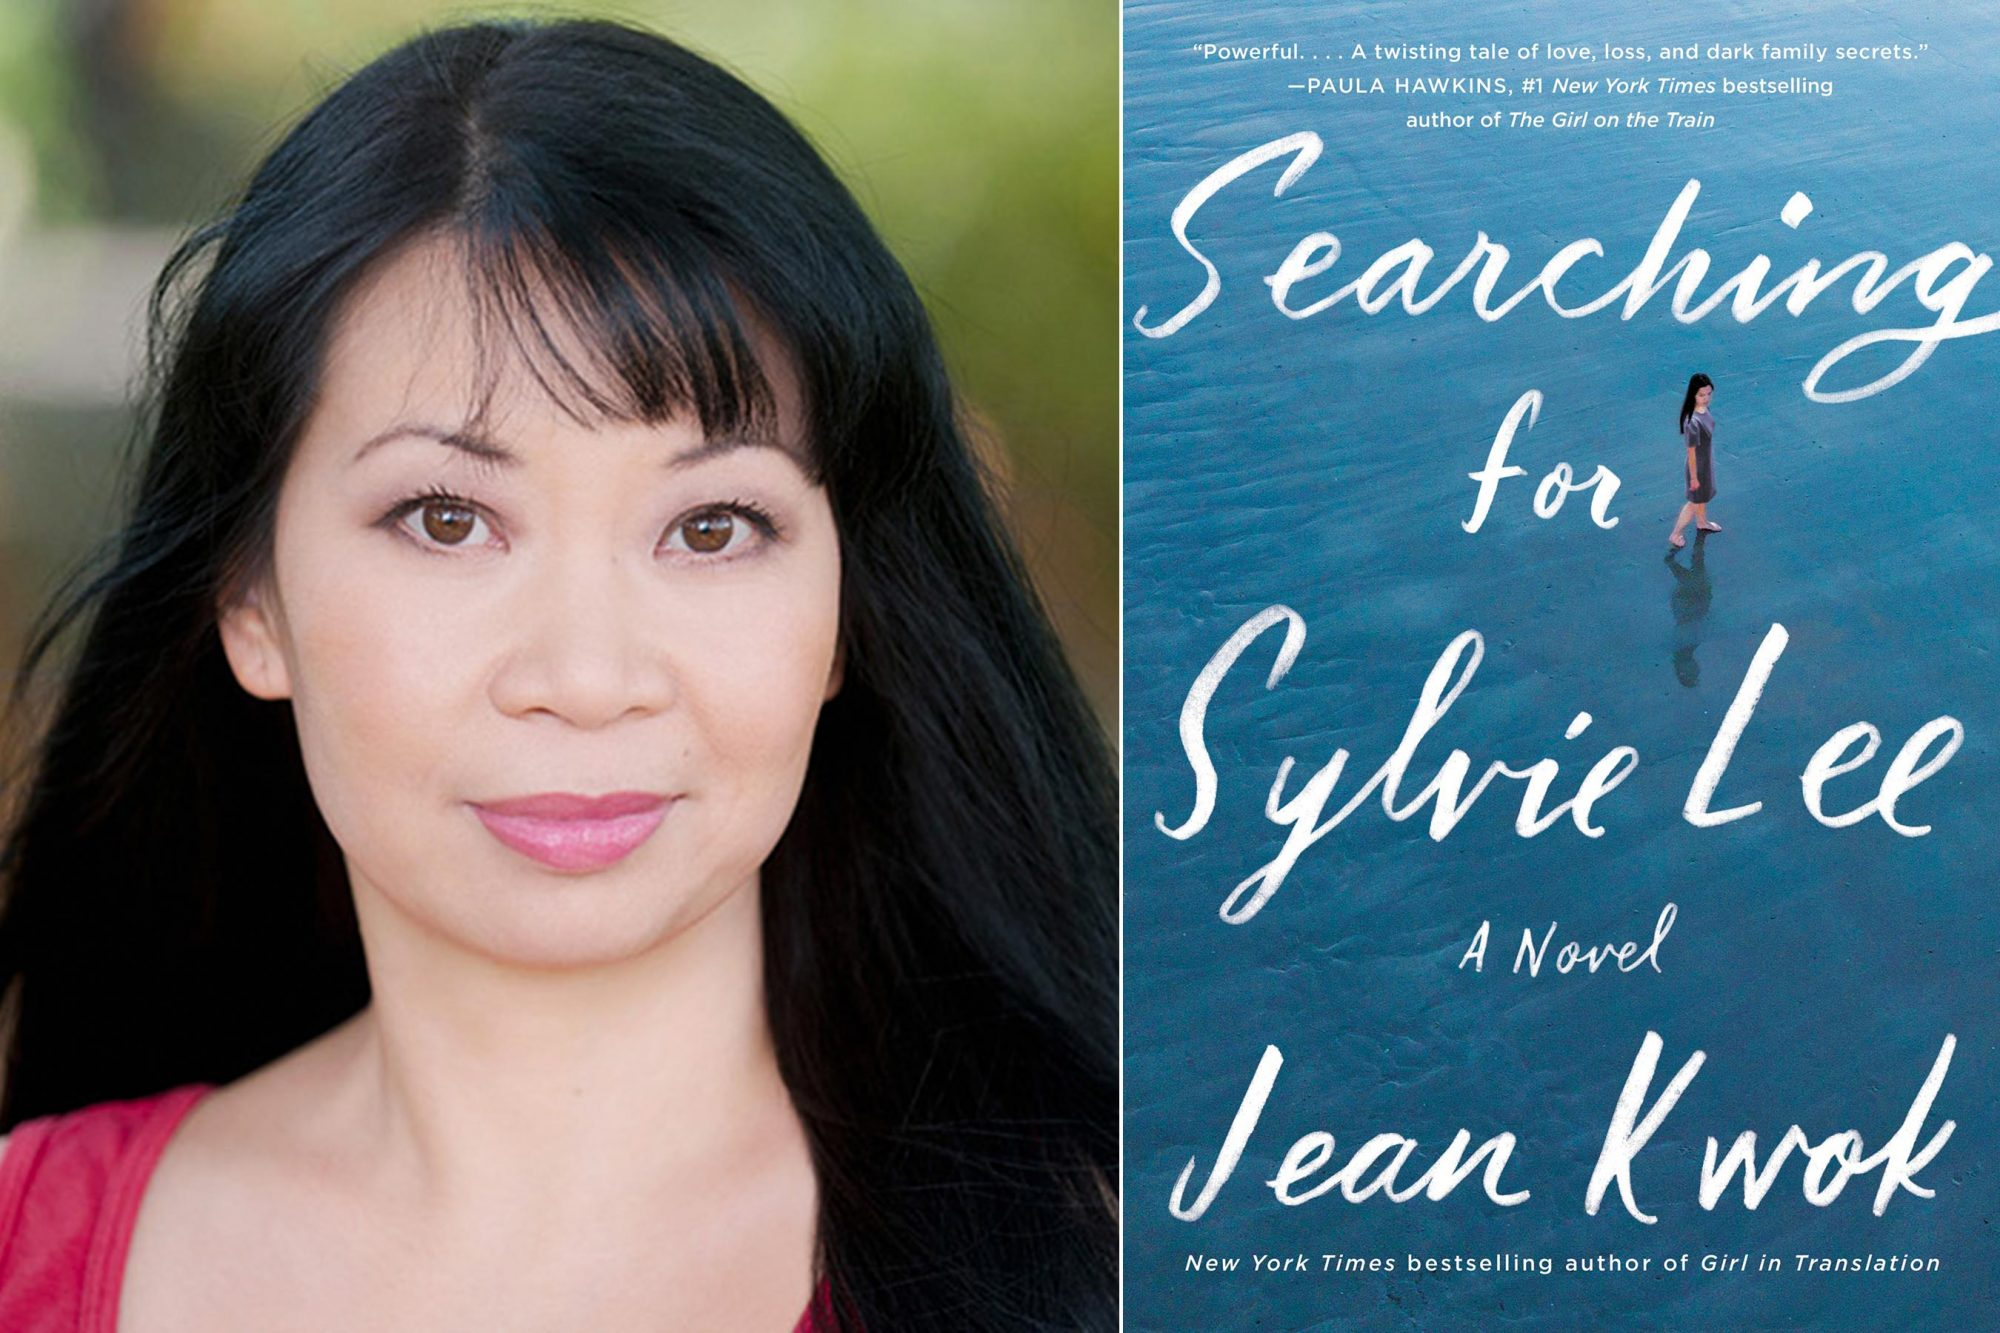 Jean Kwok author photo CR: Chris Macke Searching for Sylvie Lee by Jean Kwok CR: HarperCollins